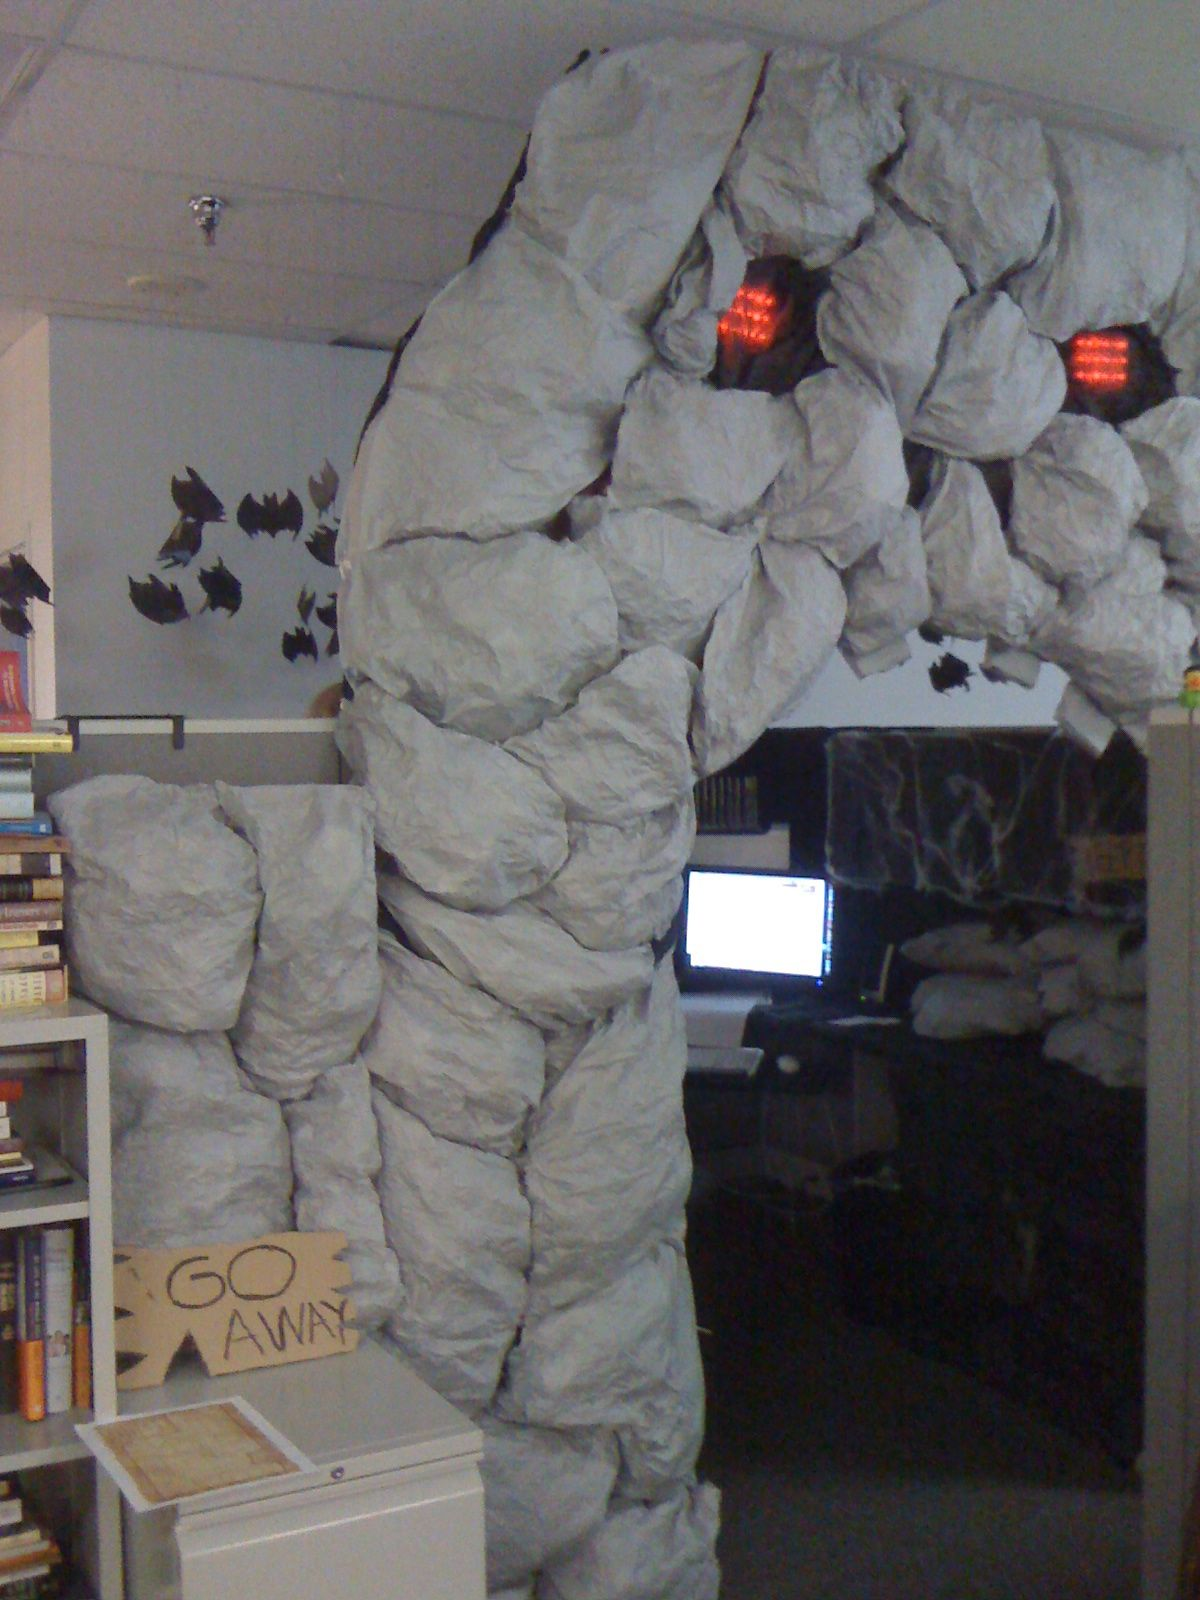 DIY Cubicle Cave Des Moines Register Staff Blogs Halloween - Cubicle Halloween Decorations